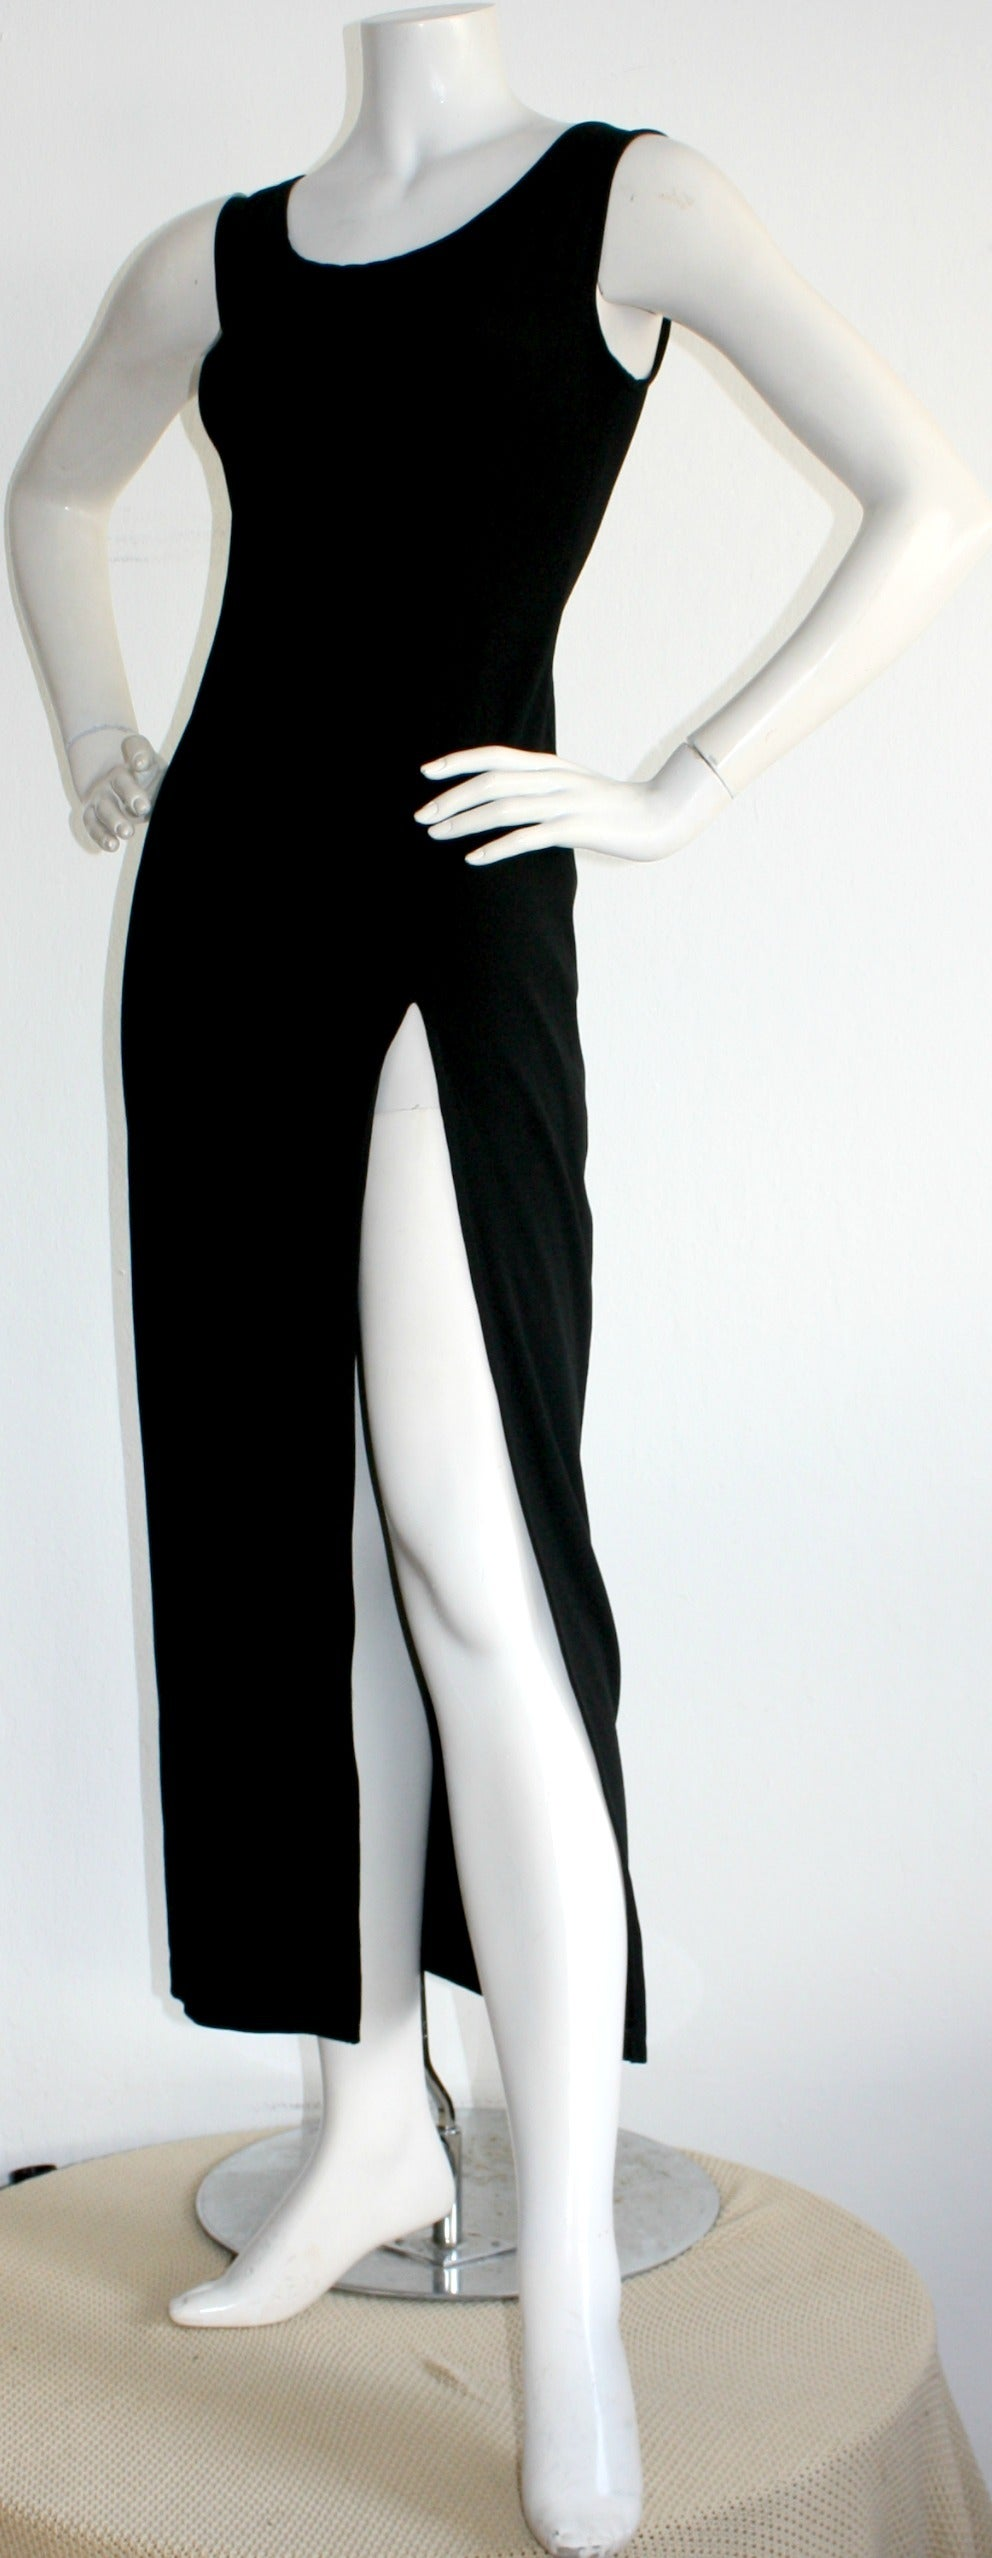 Sexy 1990s Vintage Jean Paul Gaultier Black dress w/ High Slit In Excellent Condition For Sale In San Francisco, CA